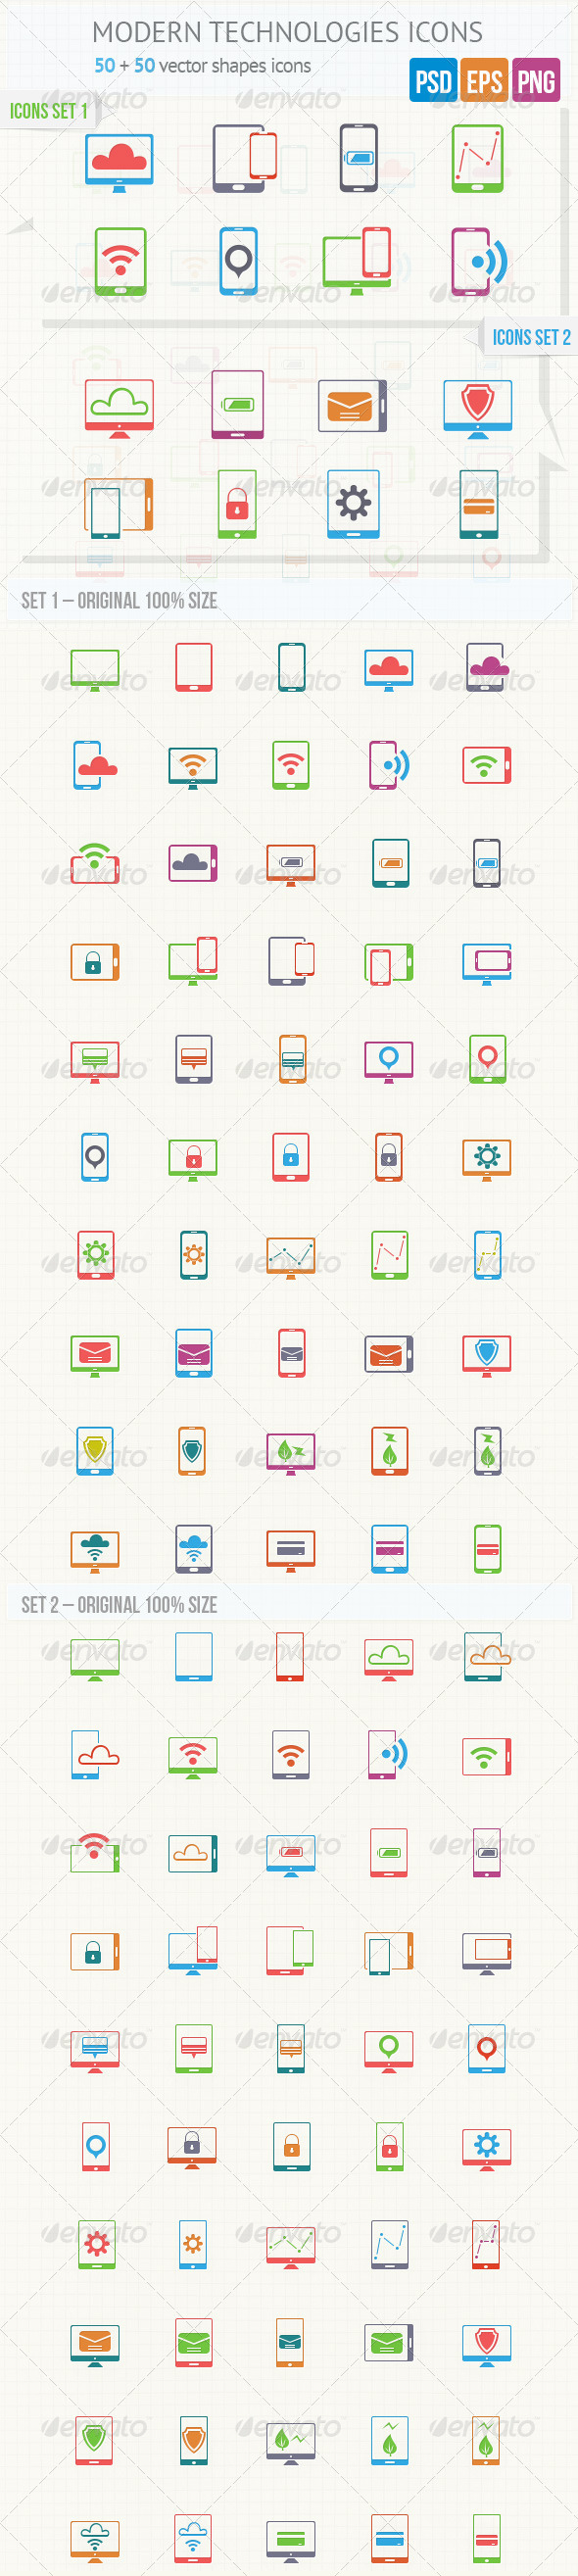 GraphicRiver Modern Technologies Icons 4635339